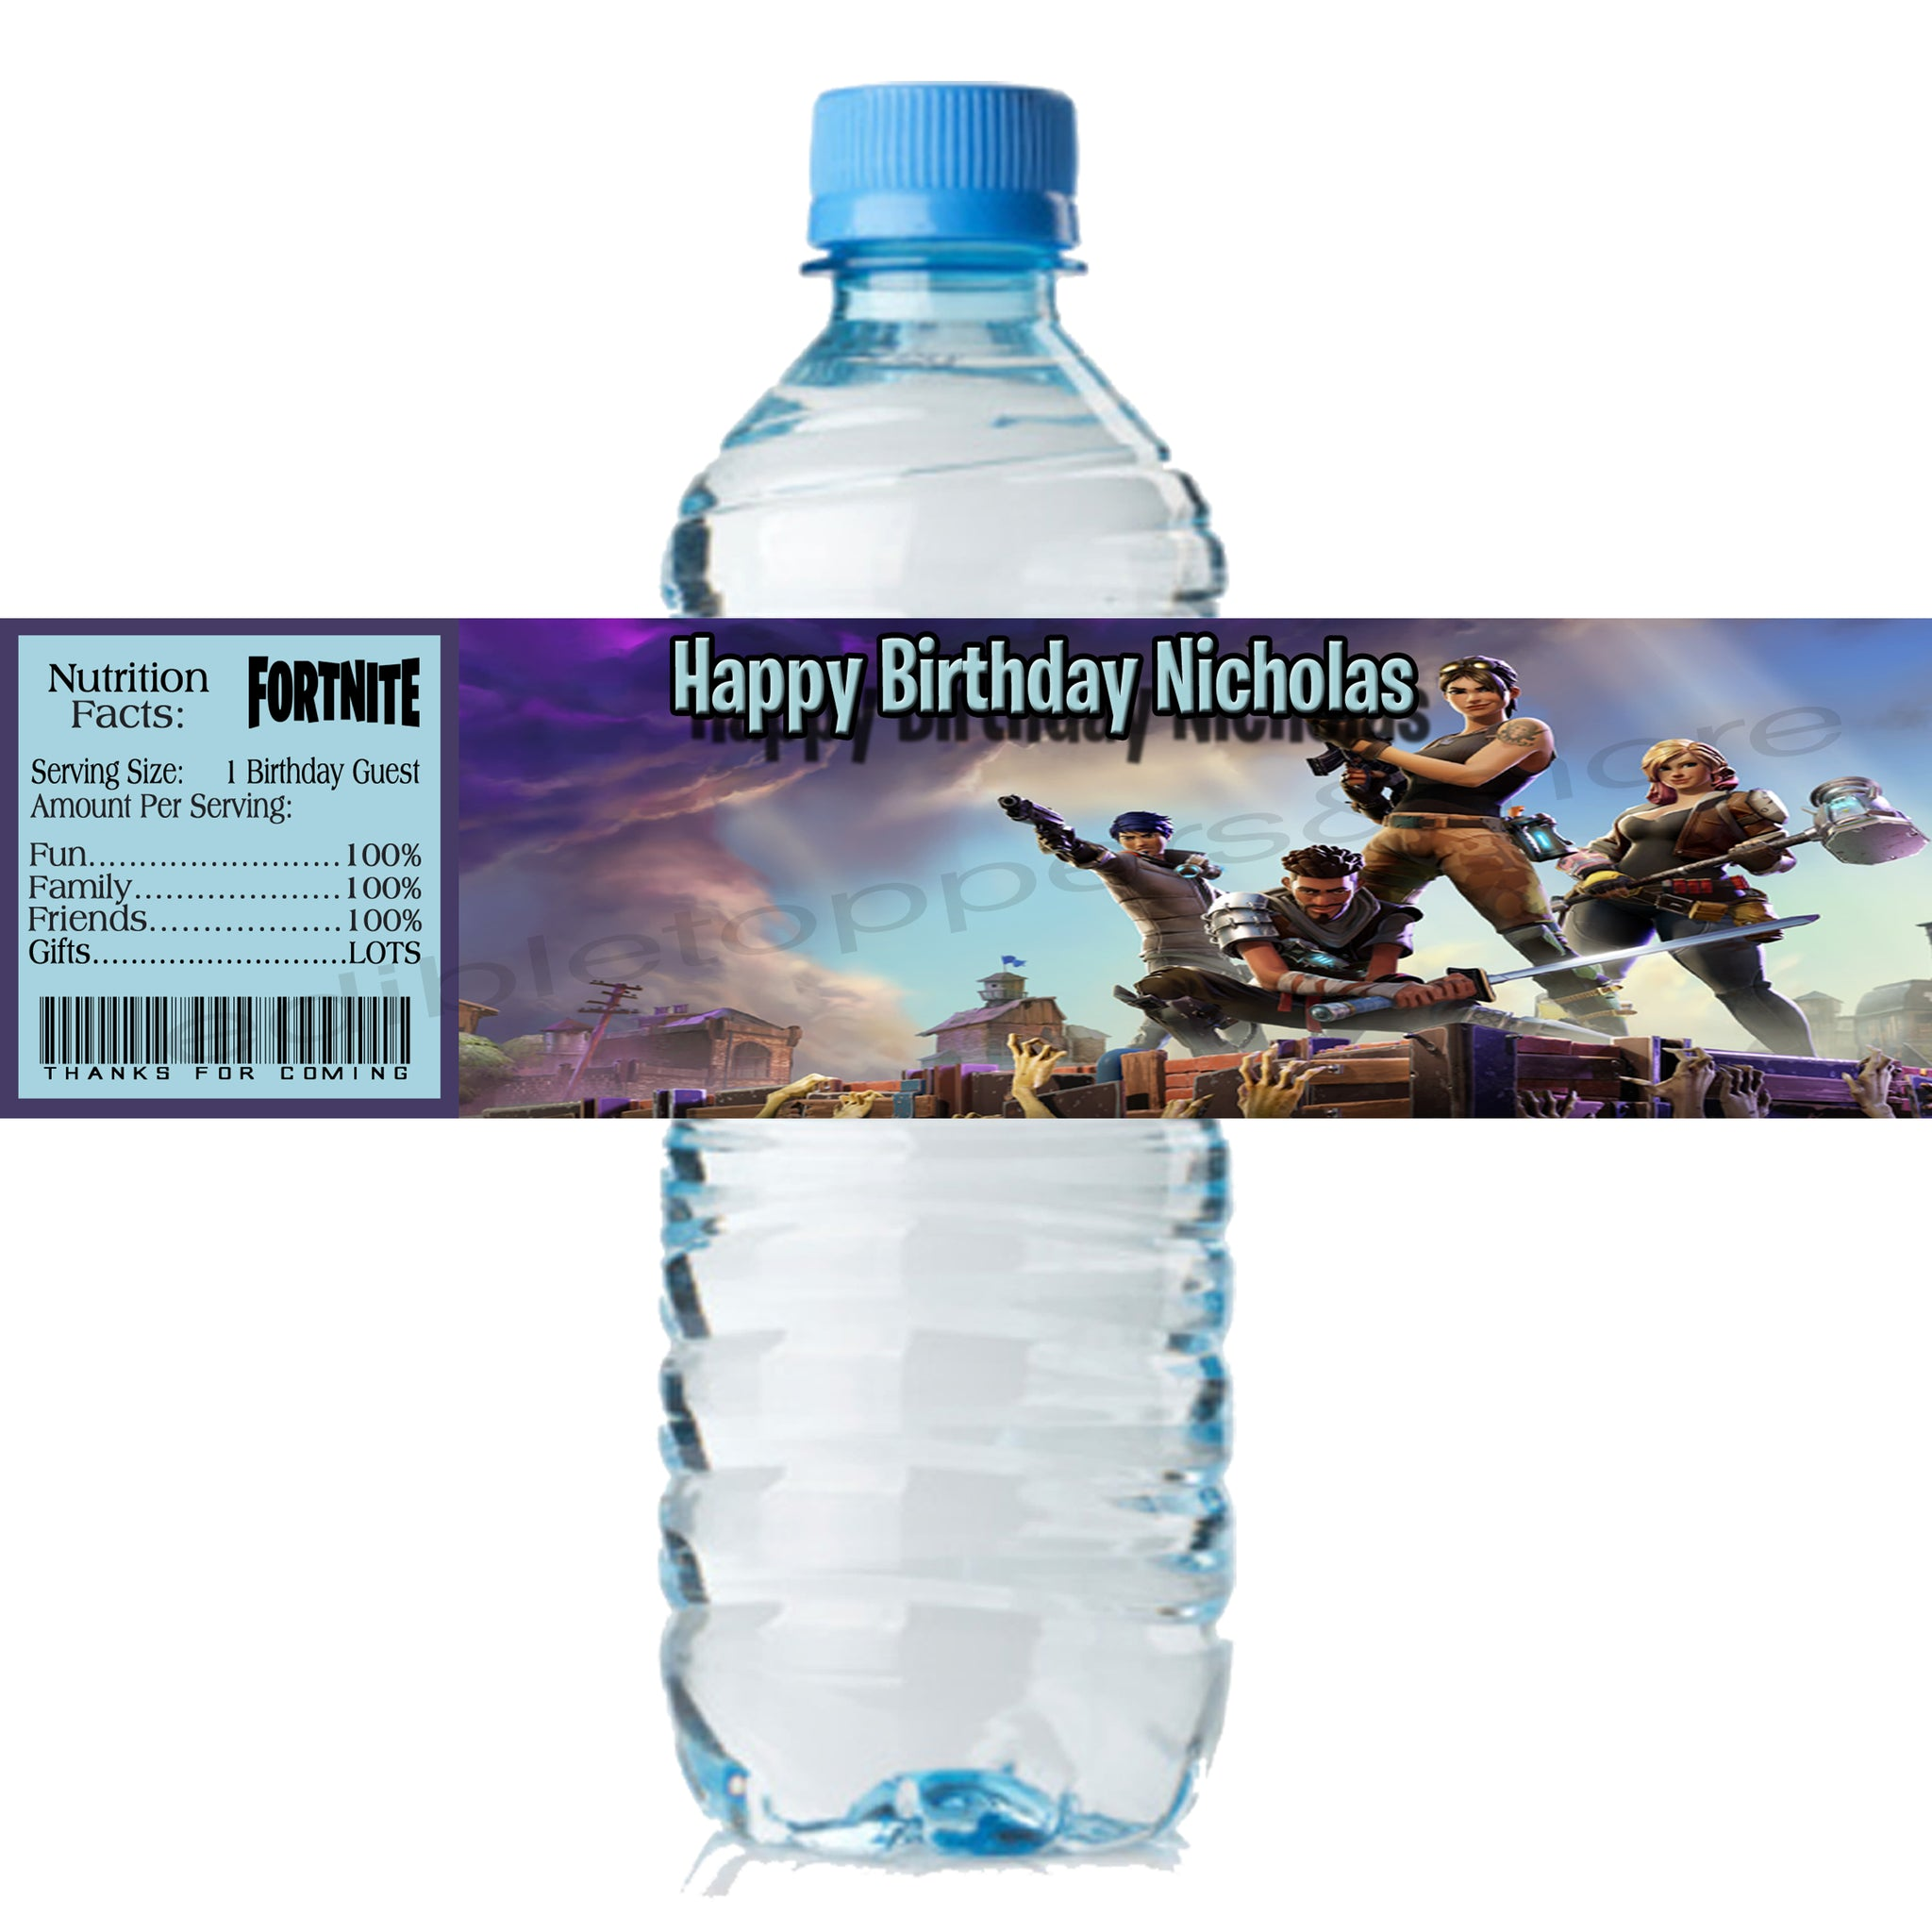 (20) Personalized FORTNITE 2 x 8 Weatherproof Water Bottle Labels Party Favors